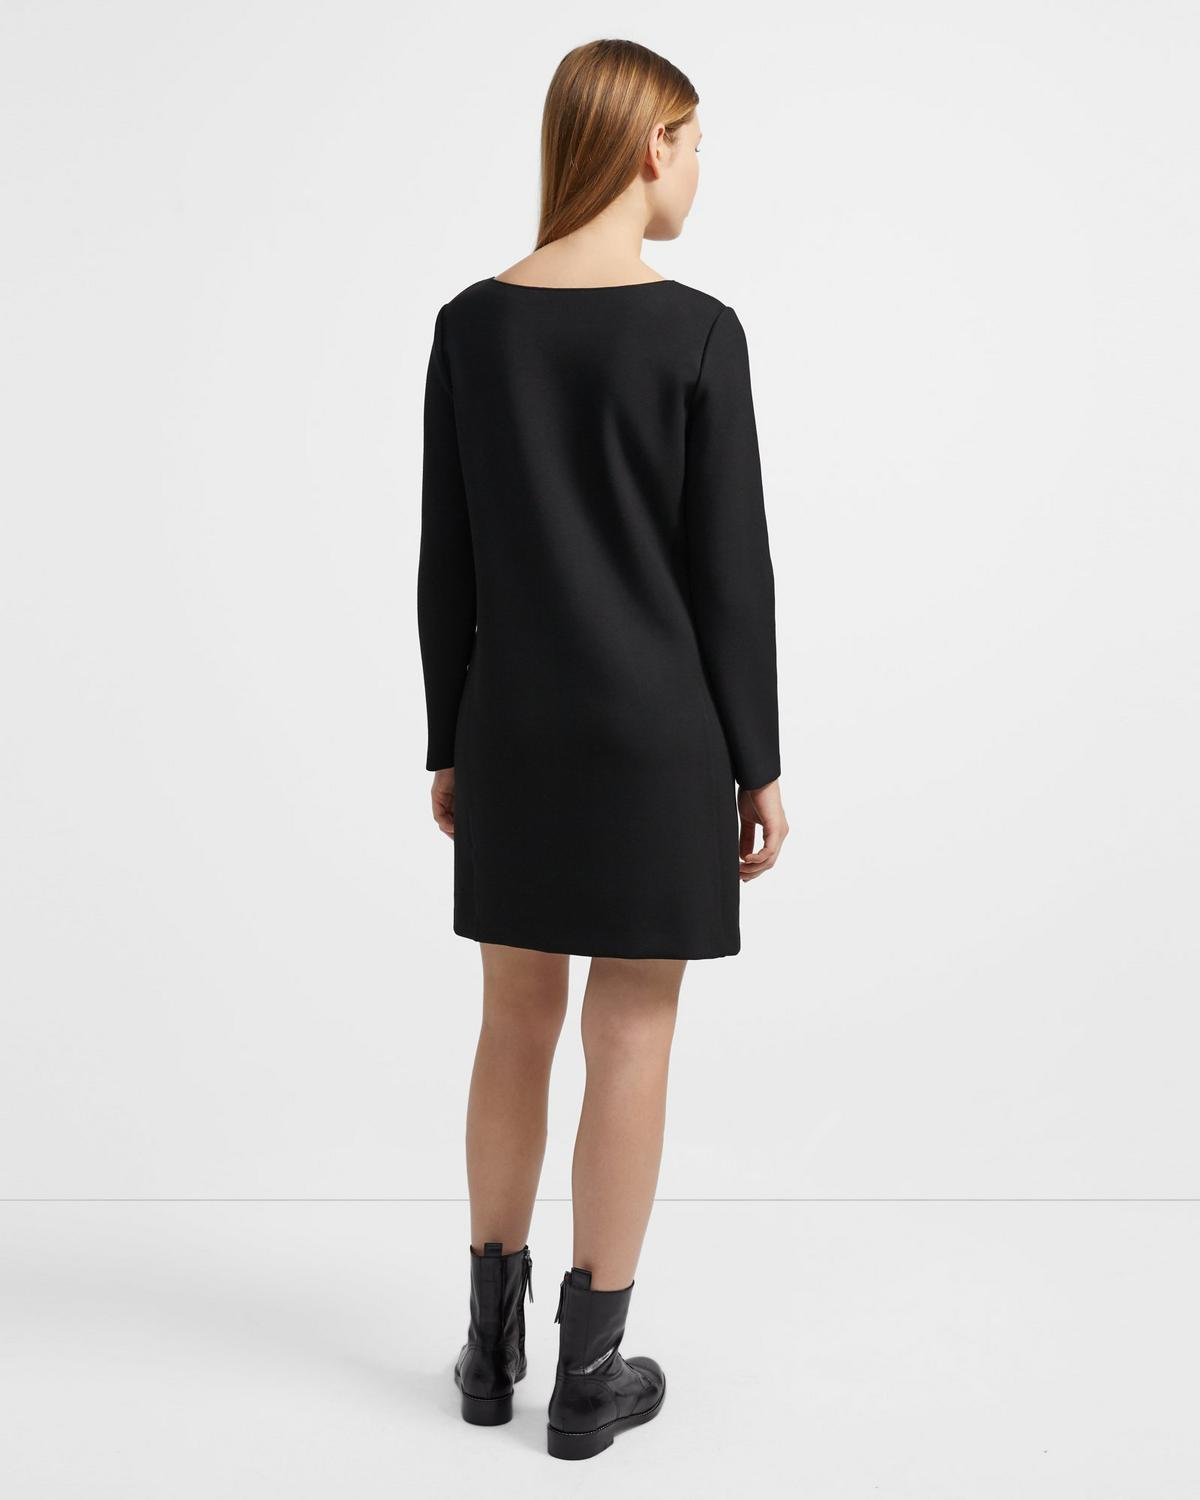 Boatneck Dress in Double Knit Jersey